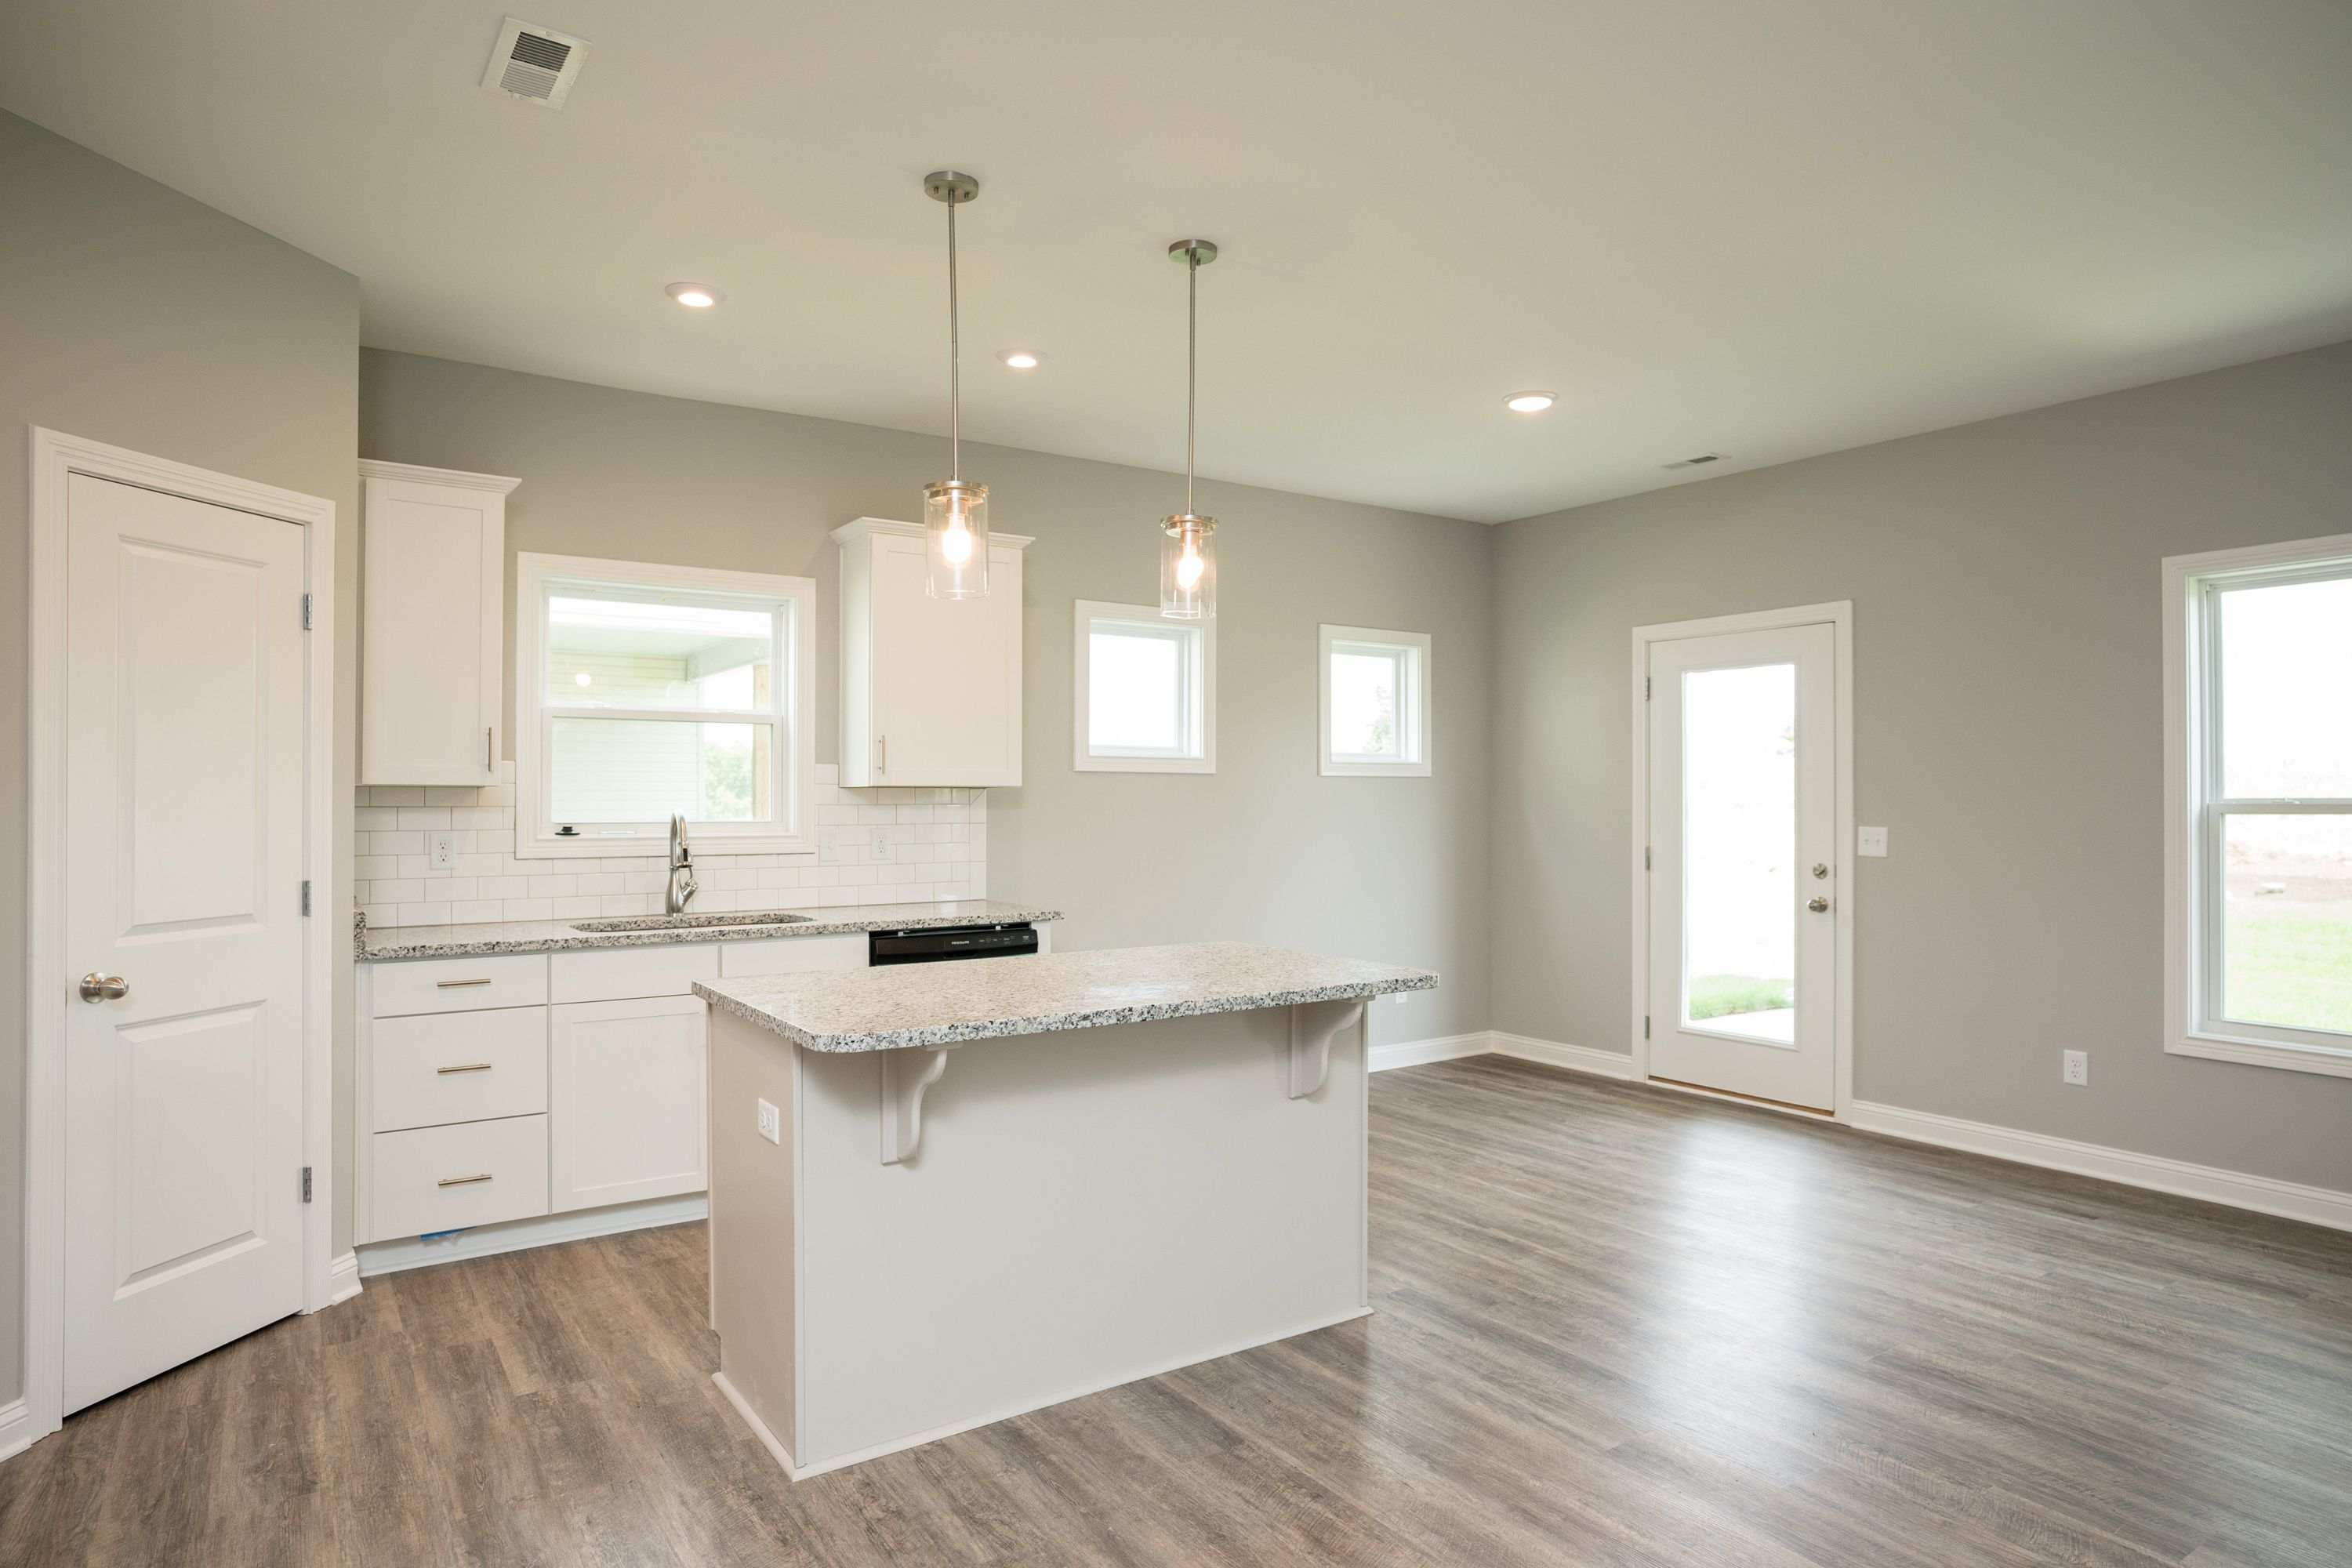 Kitchen featured in The Martha By James Monroe Homes in Lexington, KY